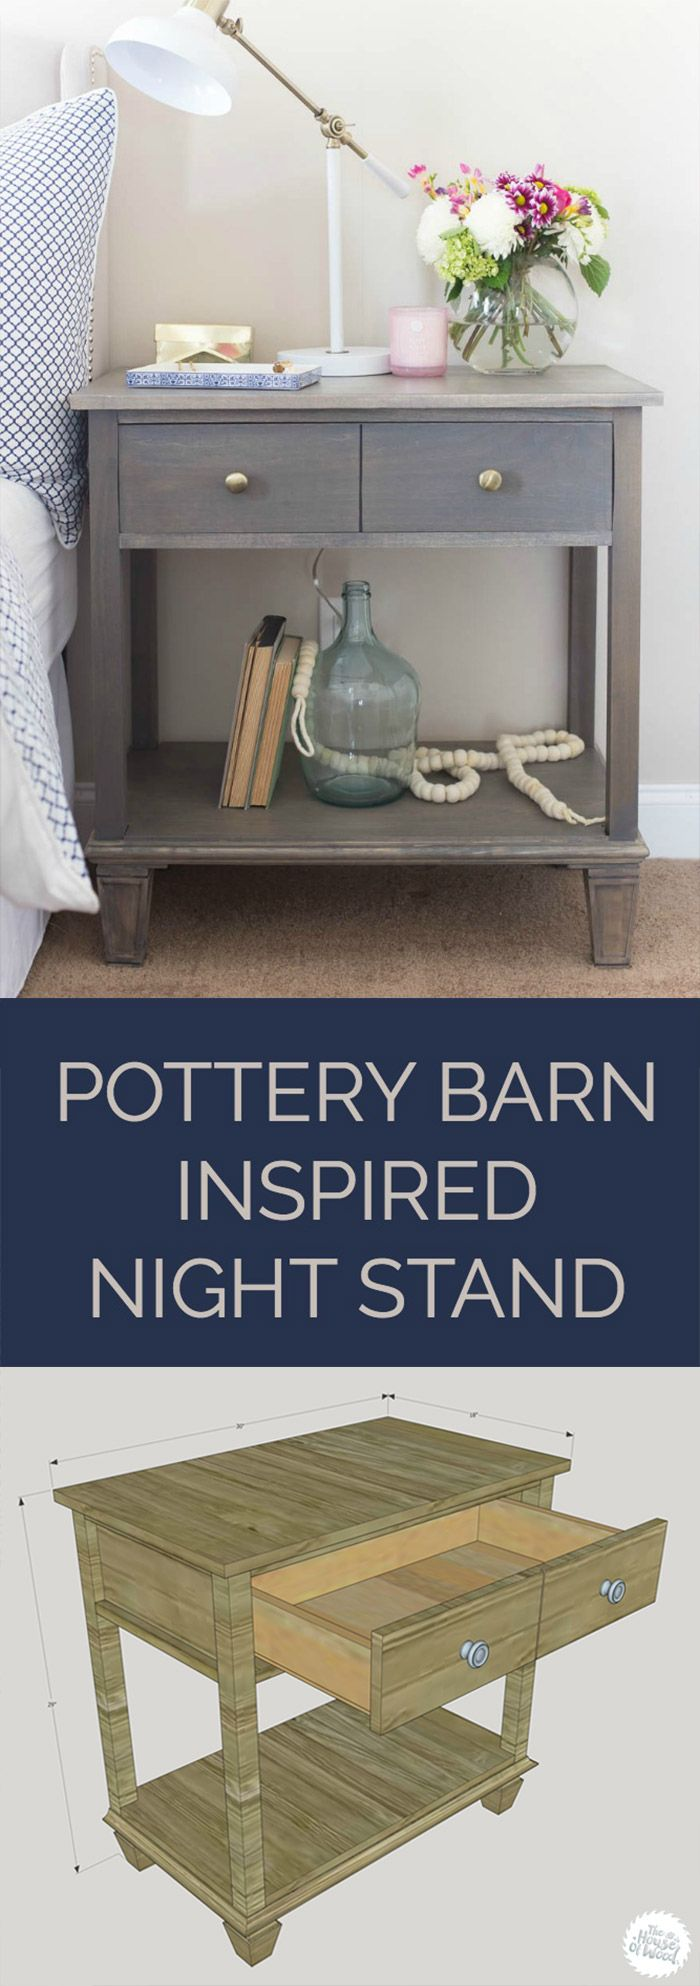 DIY Pottery Barn-Inspired Sausalito Bedside Table | Diy holz ...